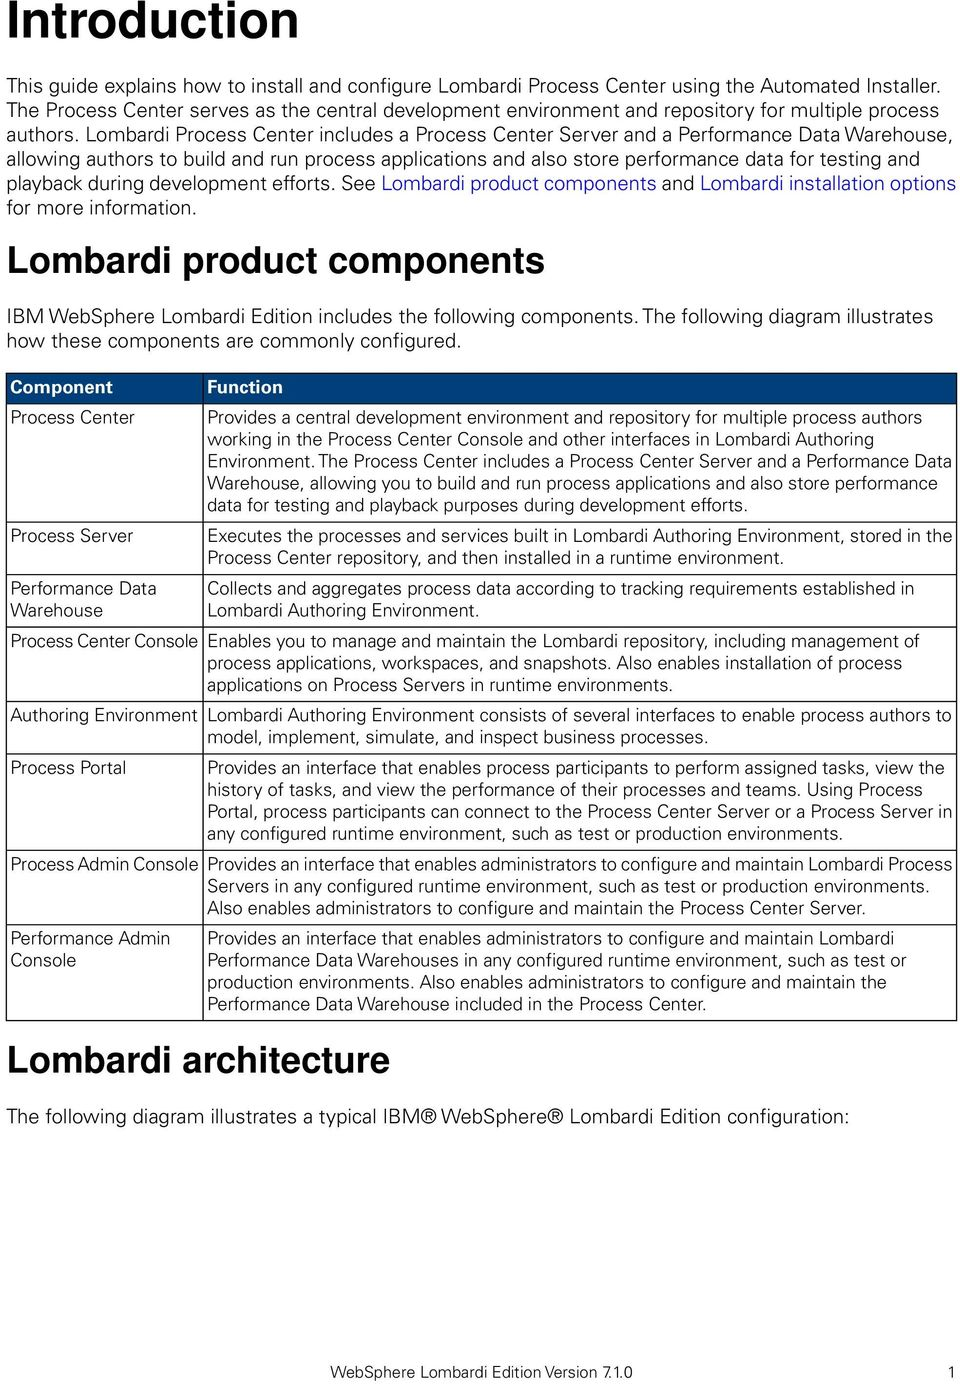 Lombardi Process Center includes a Process Center Server and a Performance Data Warehouse, allowing authors to build and run process applications and also store performance data for testing and